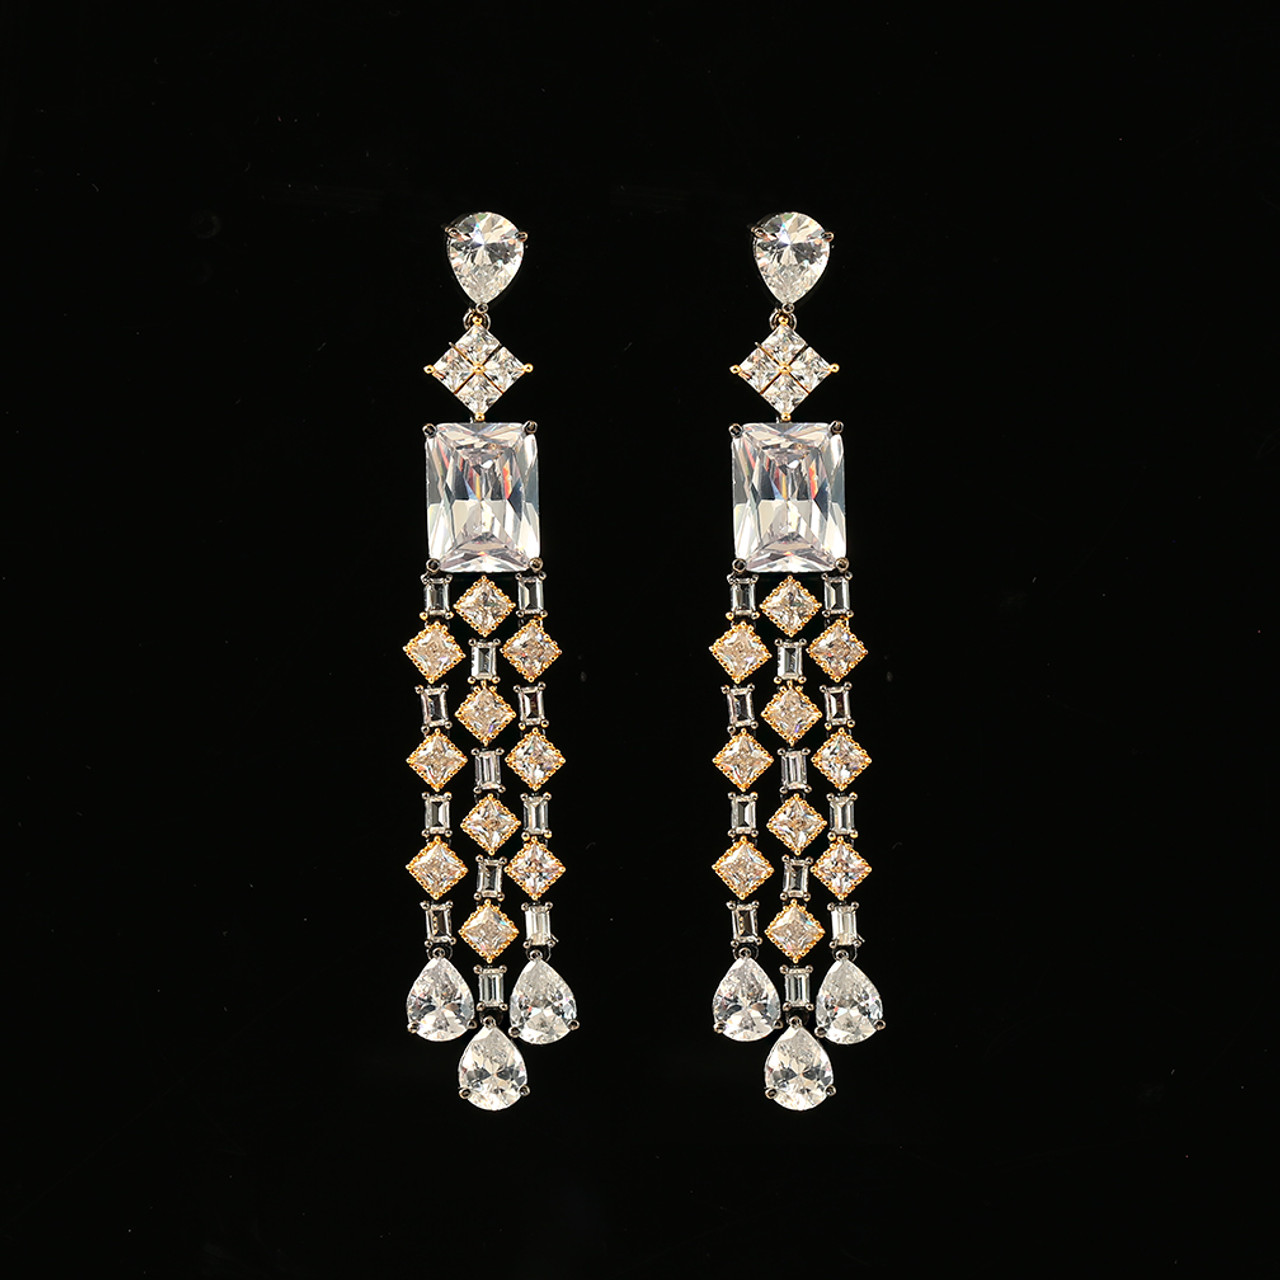 e24ba6d2c5c American Diamond CZ Fashion Jewelry Gold and Rhodium Plated White Stone  Earring